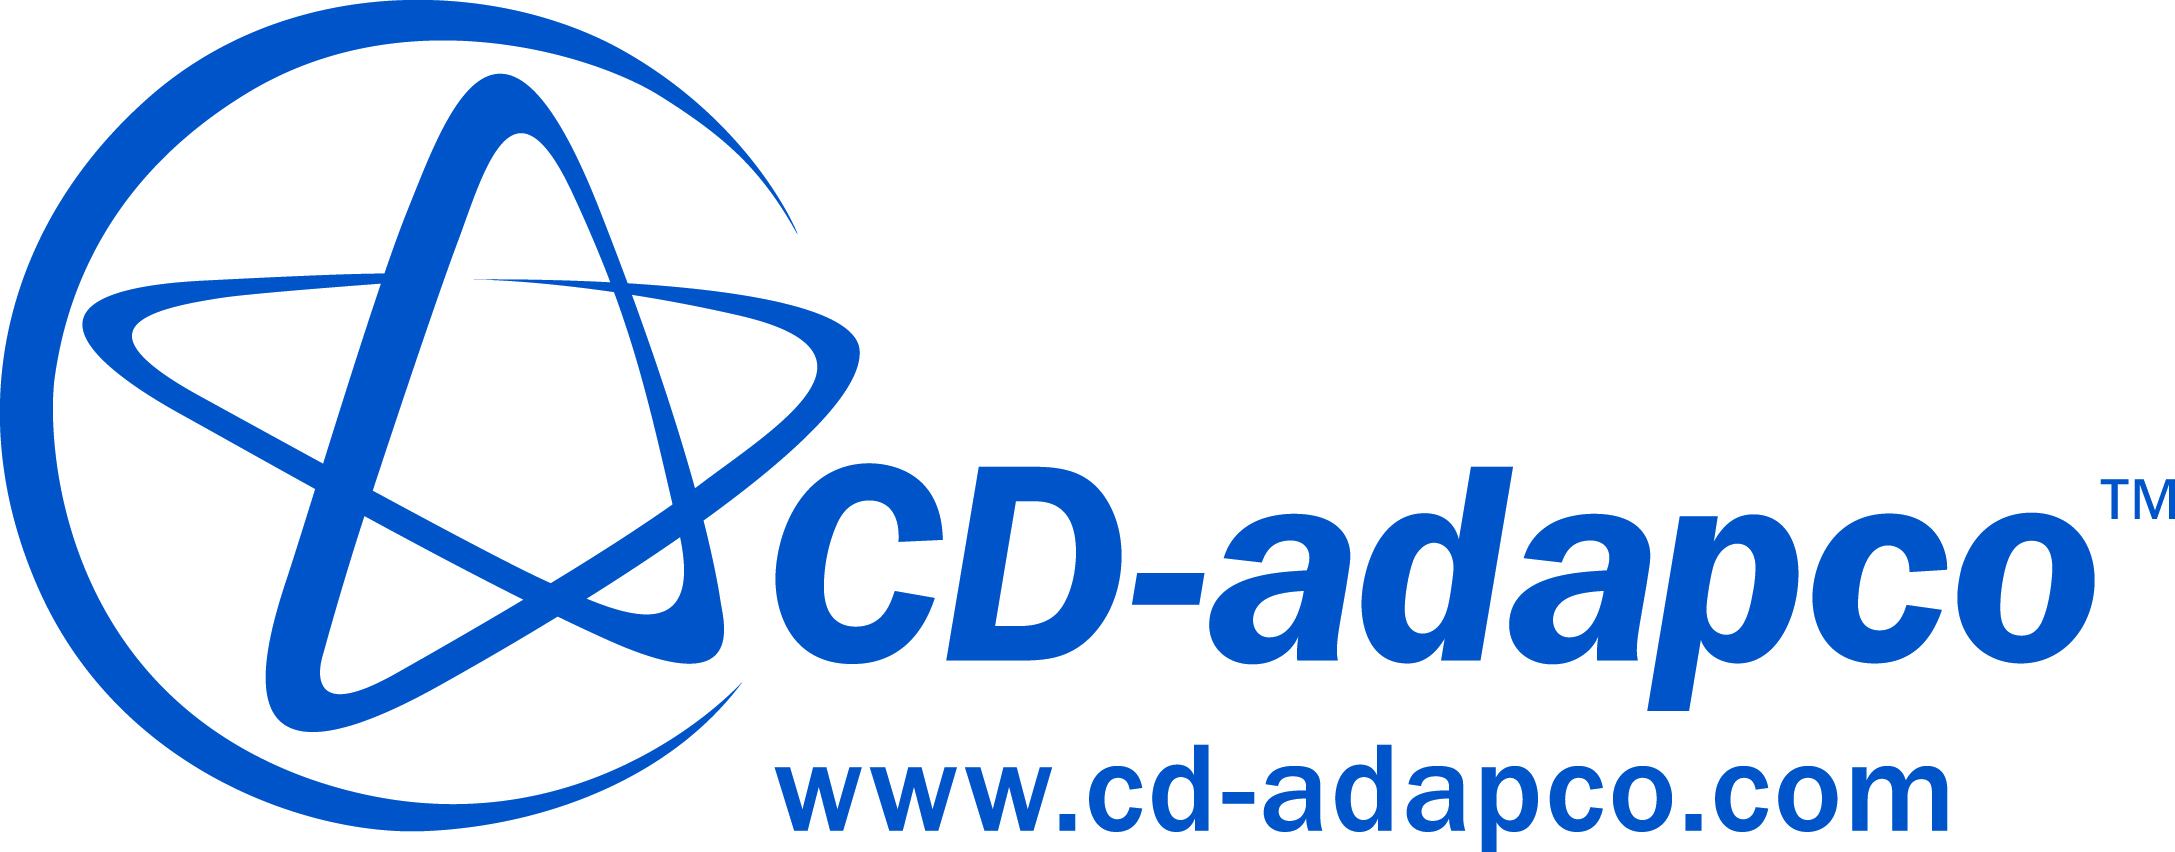 cd-adapco tm with web cmyk.jpg